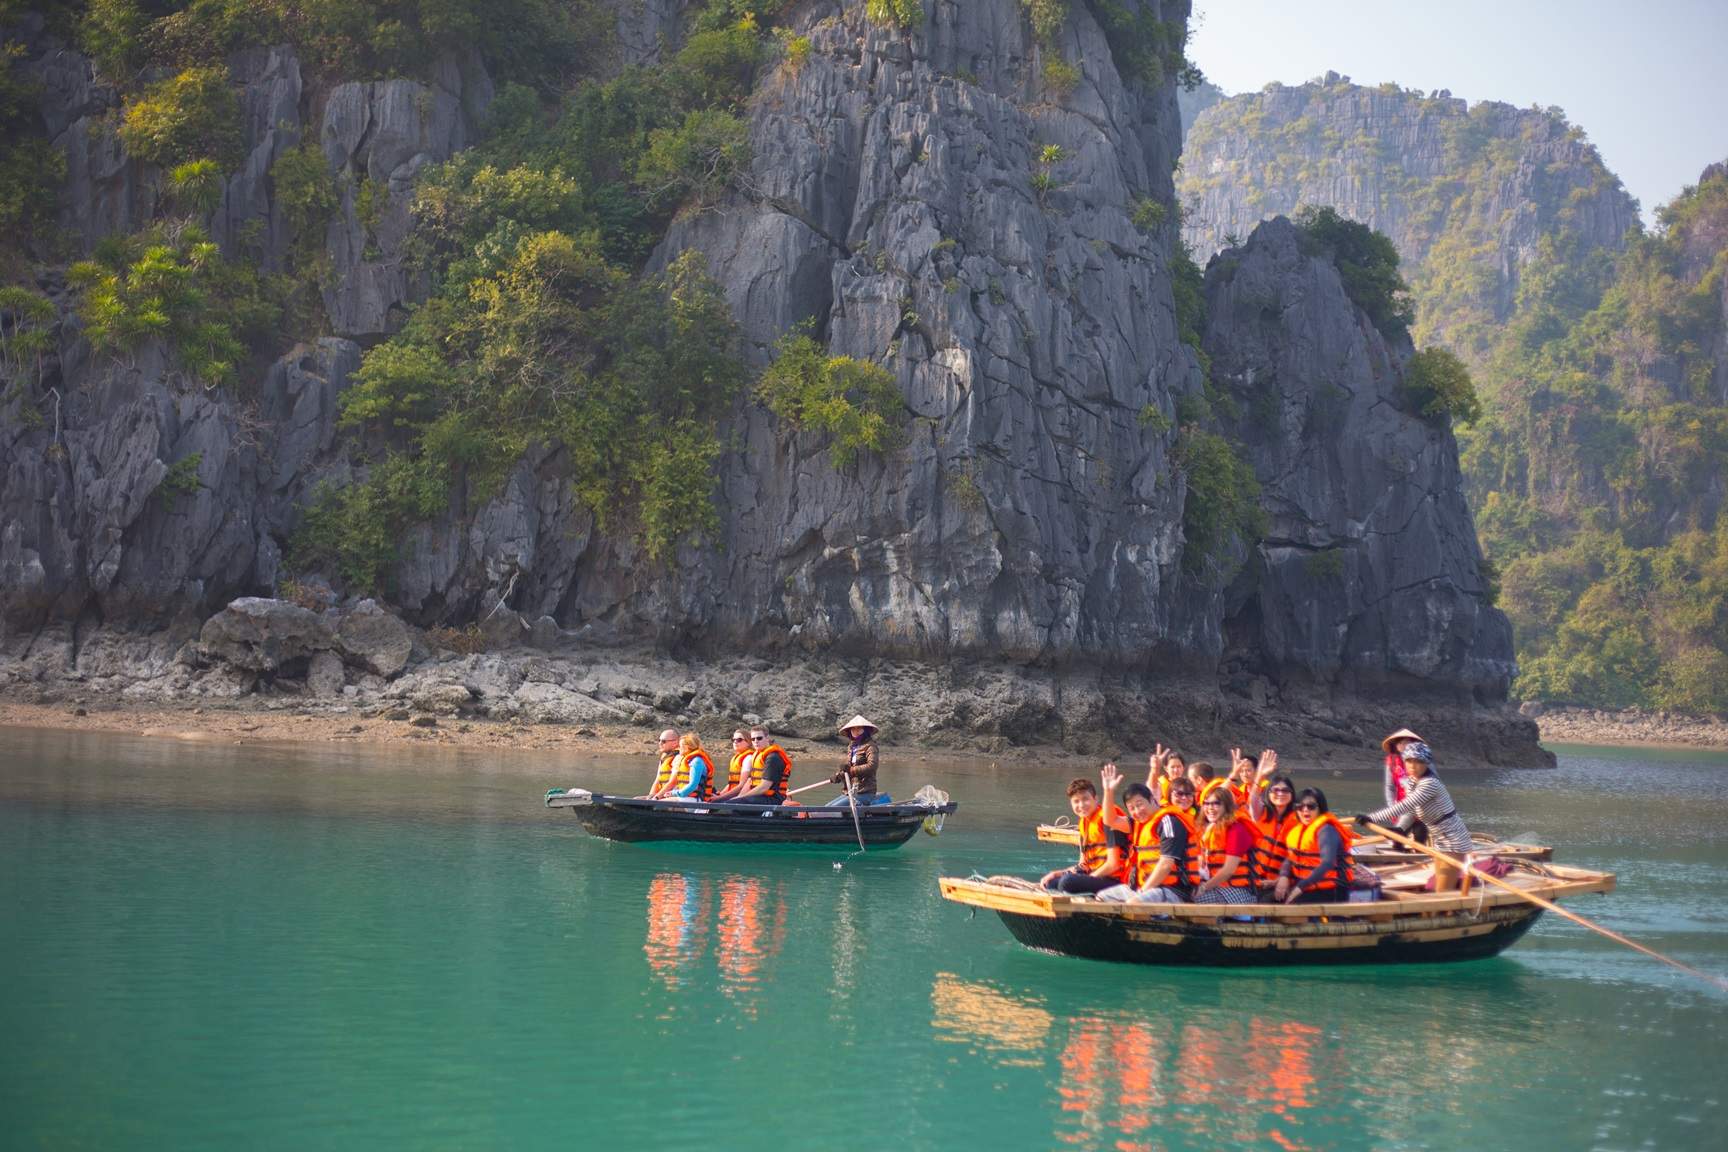 Kayaking in Ha Long Bay with Siganture Ha Long Cruise